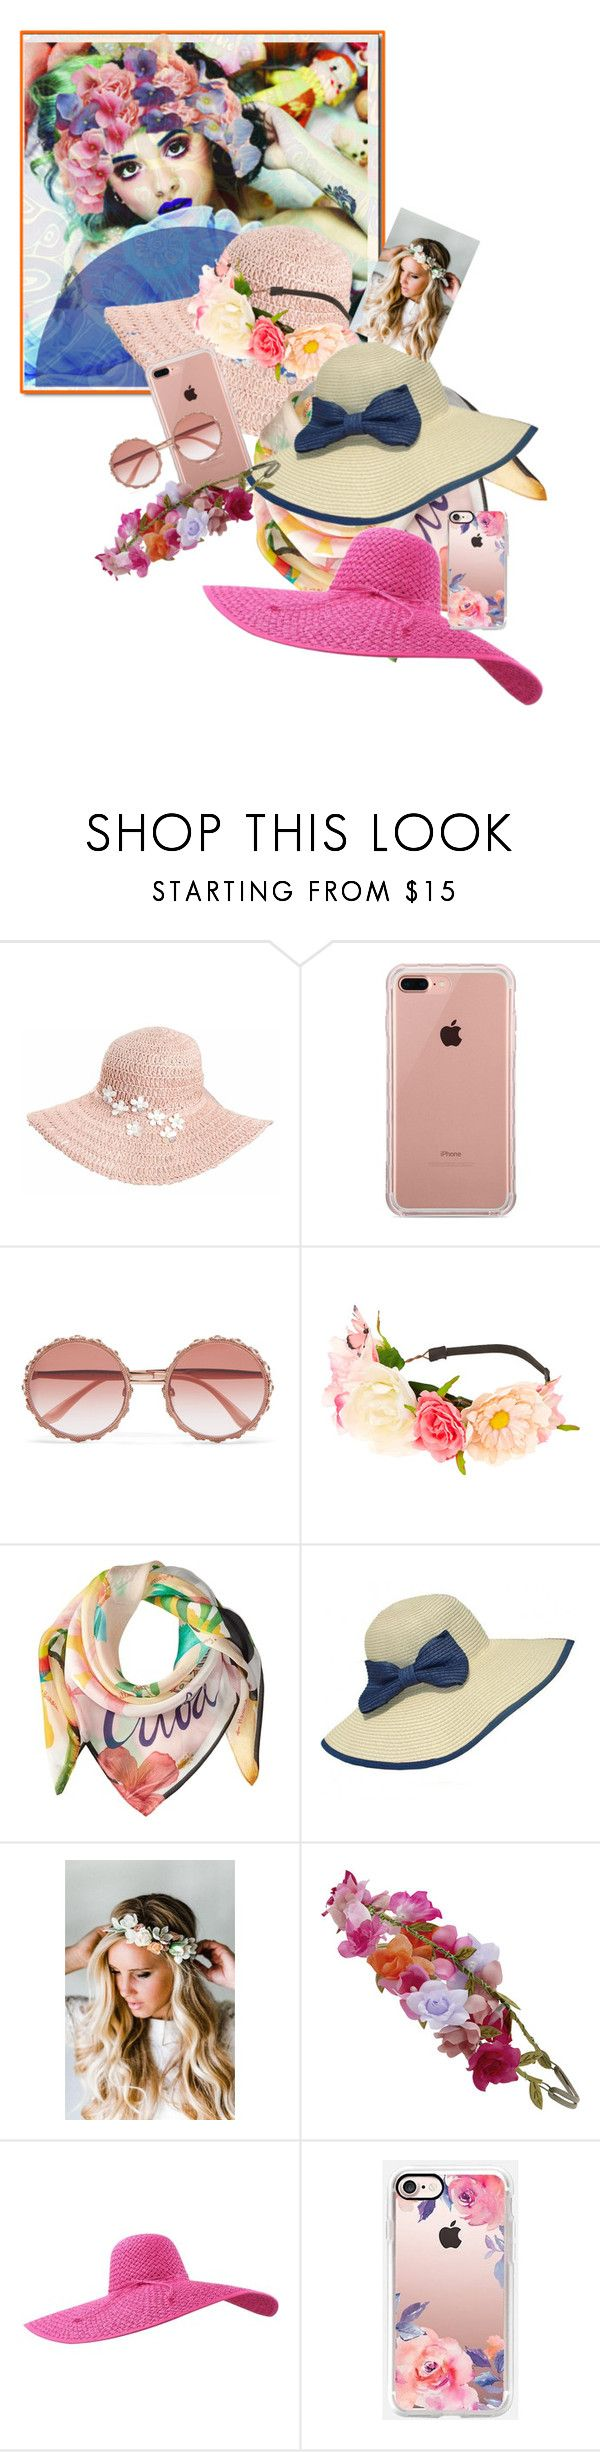 """Geen titel #33715"" by lizmuller ❤ liked on Polyvore featuring Dorfman Pacific, Belkin, Dolce&Gabbana, claire's, Echo Design, WithChic, Emily Rose Flower Crowns, Accessorize and Casetify"